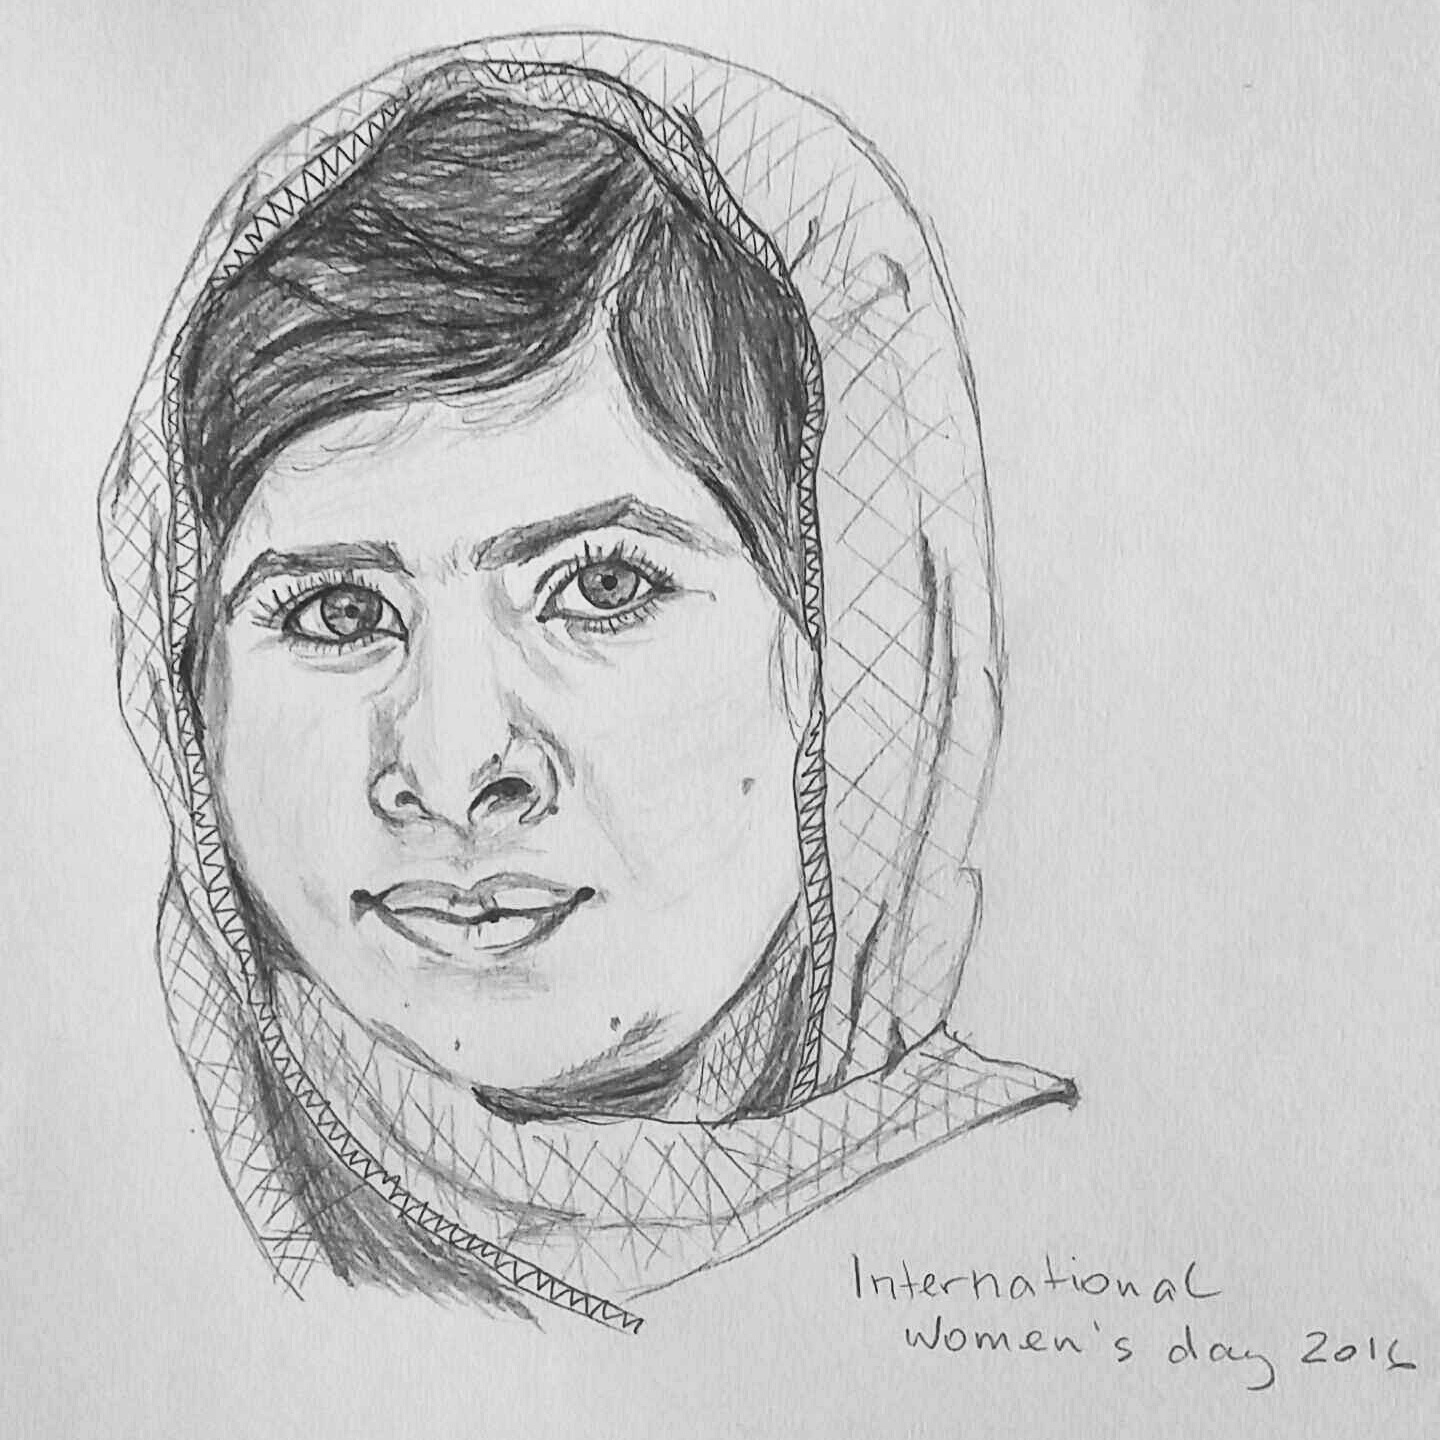 Sketch of Malala Yousafzai — she is so very inspiring that I wanted to sketch her